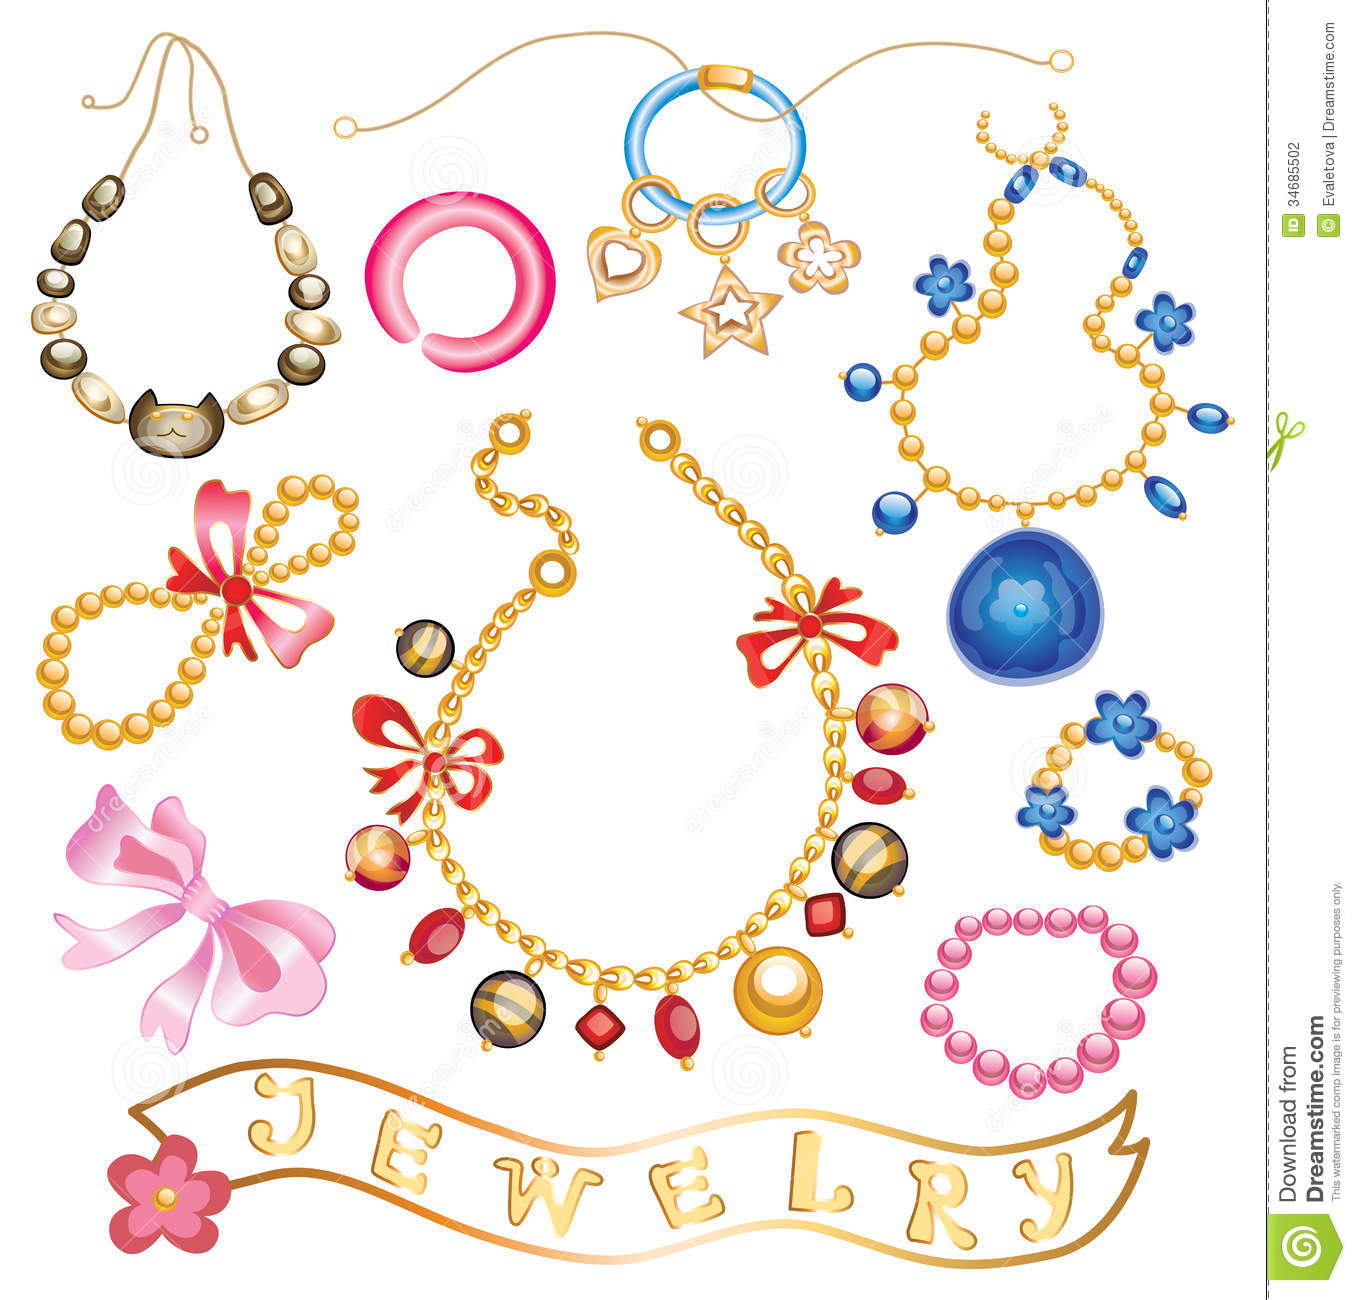 Cartoon jewelry clipart clip royalty free download 39+ Clipart Jewelry | ClipartLook clip royalty free download